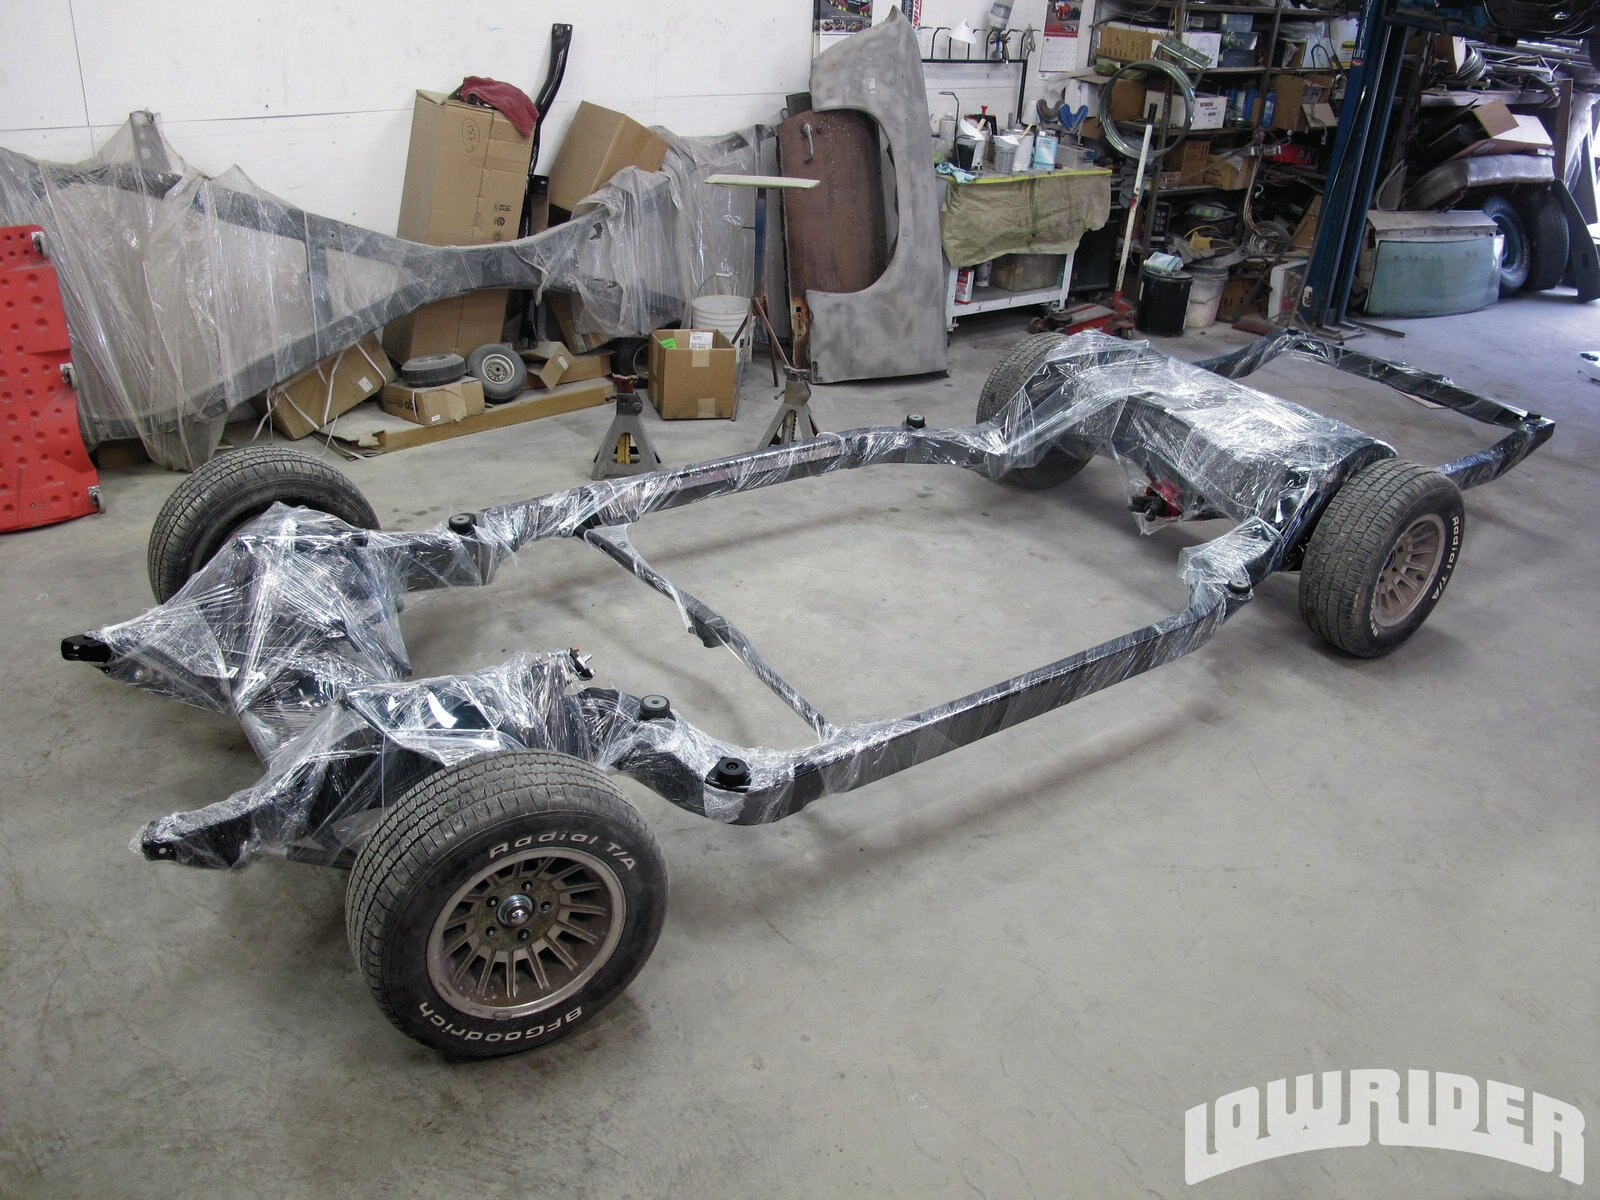 <strong>31</strong>. To protect the frame from overspray, it was wrapped with shrink-wrap and will be bolted up with it fully covered, as you can see.